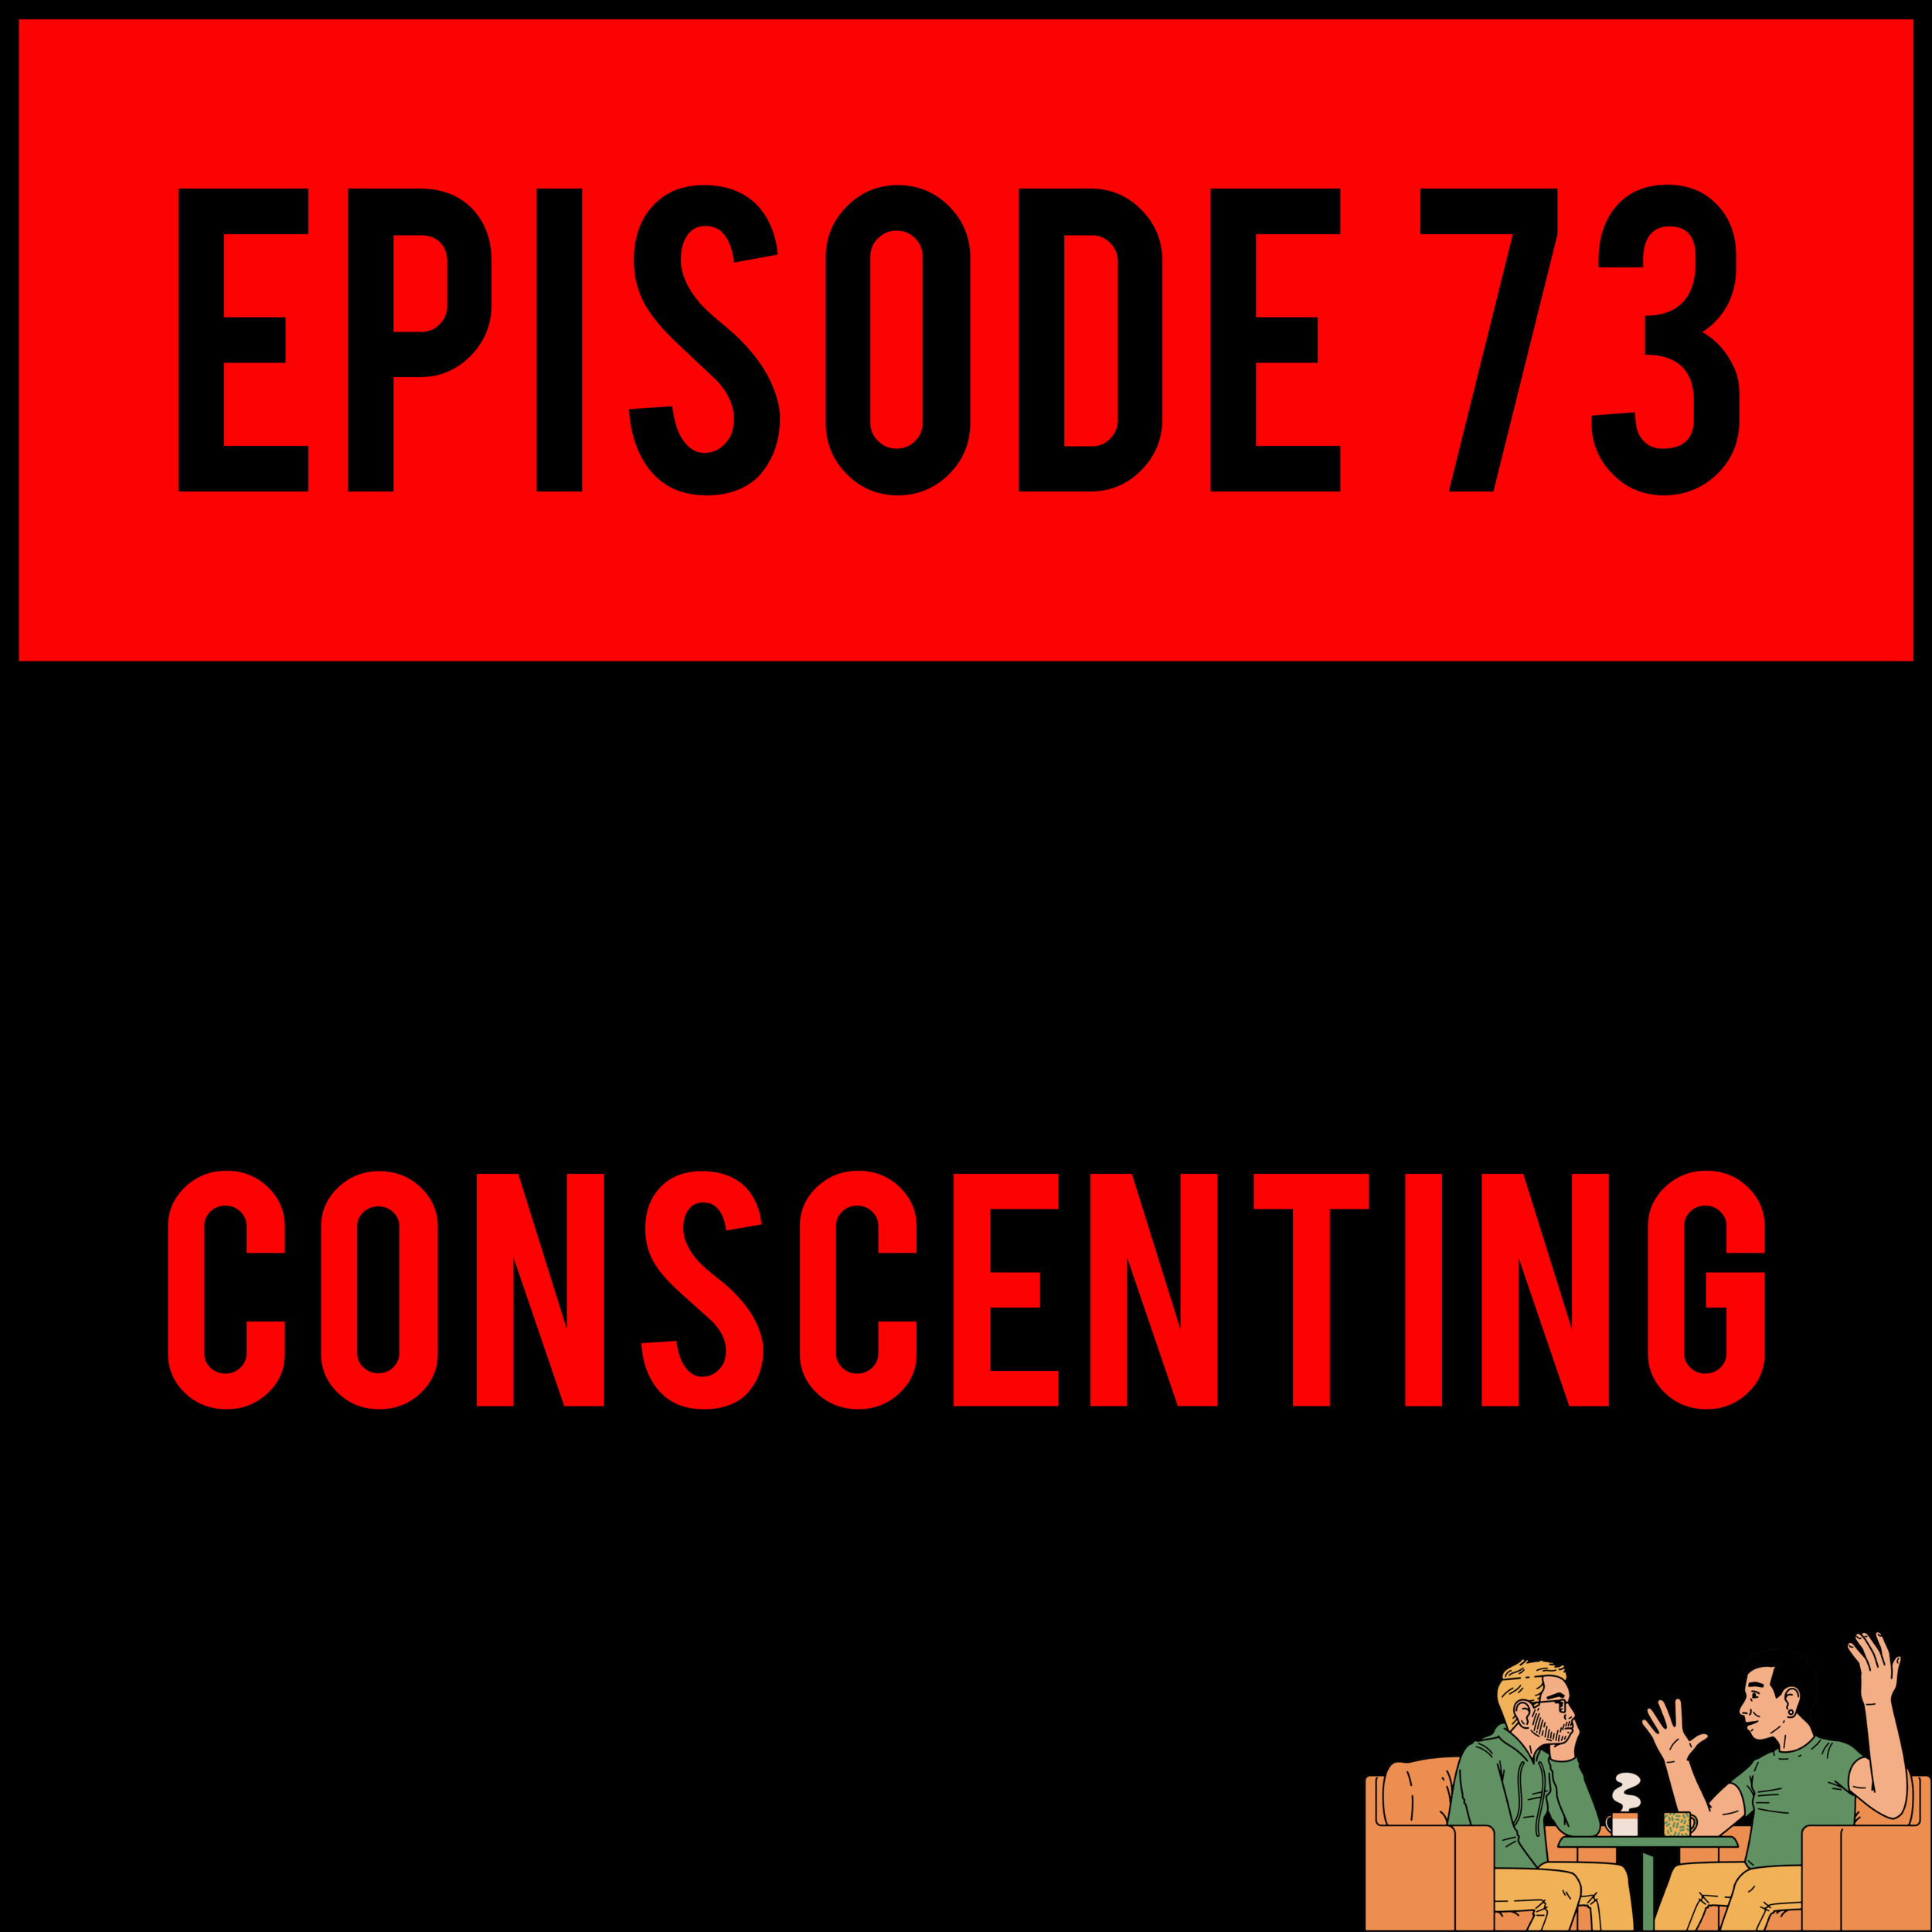 EPISODE 73 - Alex takes a horse to a hotel room, Brandon finally gets to tell us all about his trip to Europe or China, or whatever, Ashley forgot her eyebrows and Justyn teaches you the way of our lord and savior, the Sentient Yogurt.